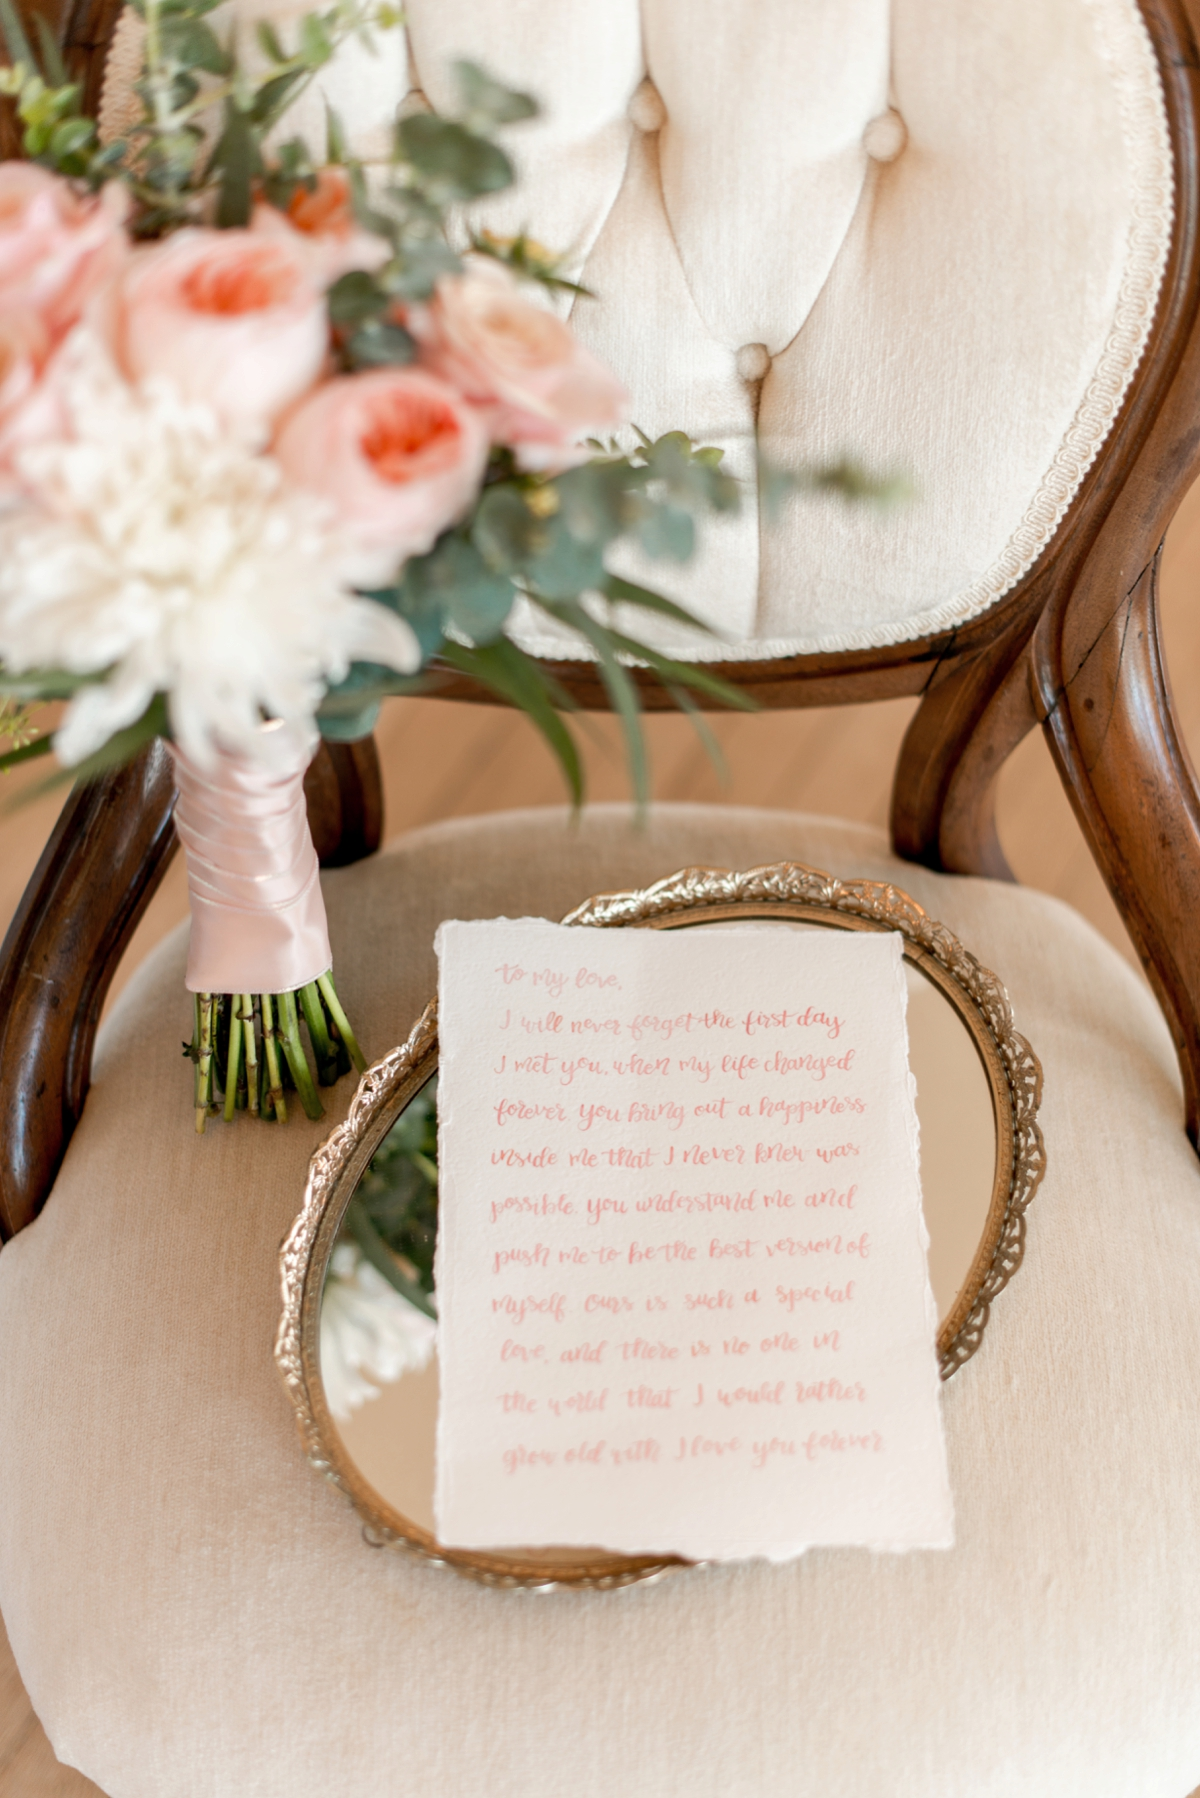 Elegant Calligraphy Inspired Wedding Ideas via TheELD.com